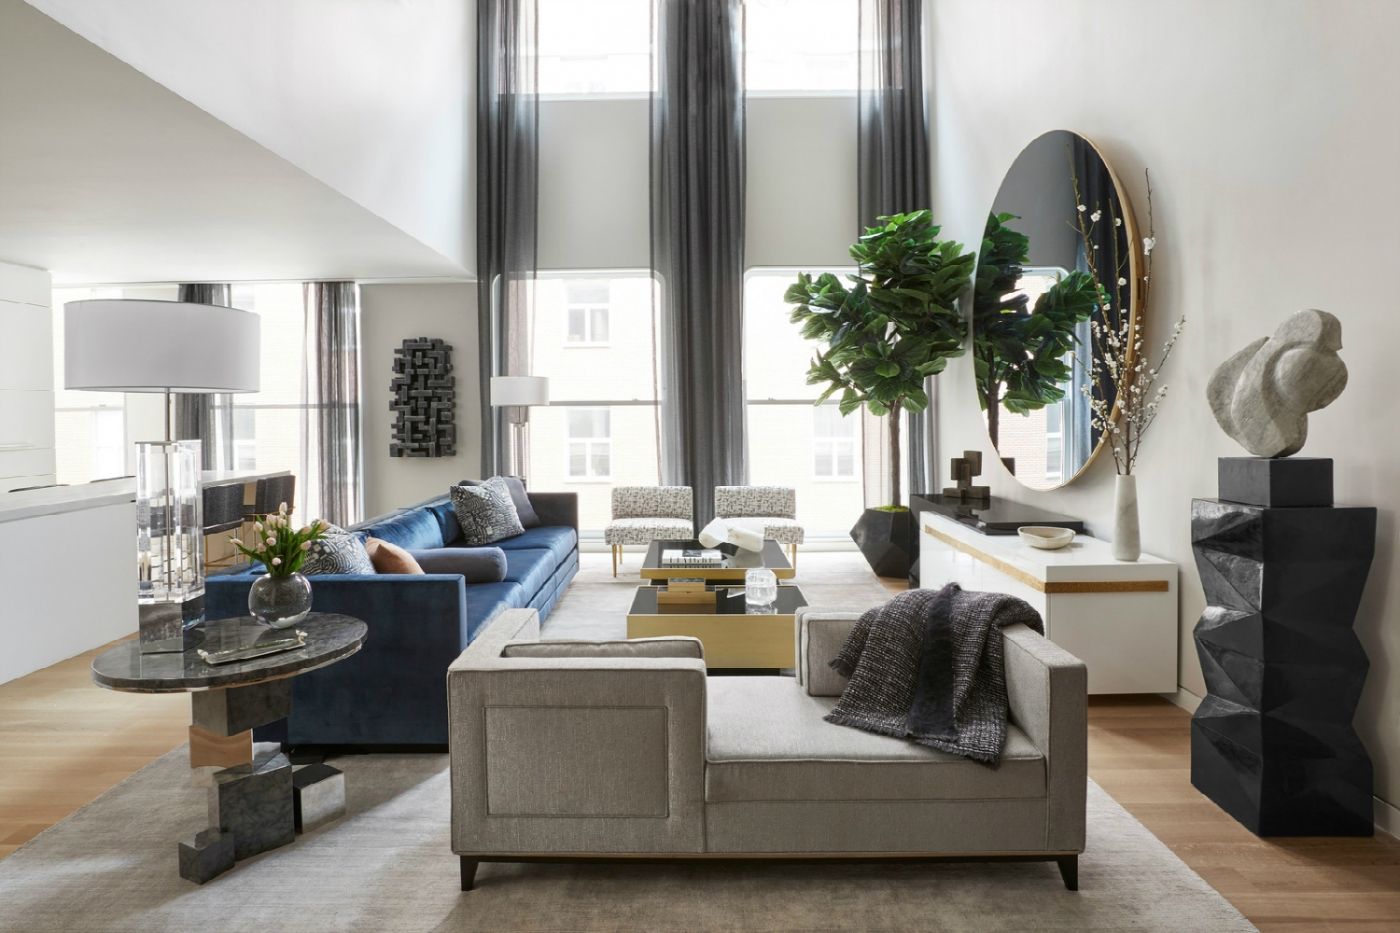 carlyle designs Tradition and Modernity: Discover The Carlyle Designs' Unique Projects featured 1400x933